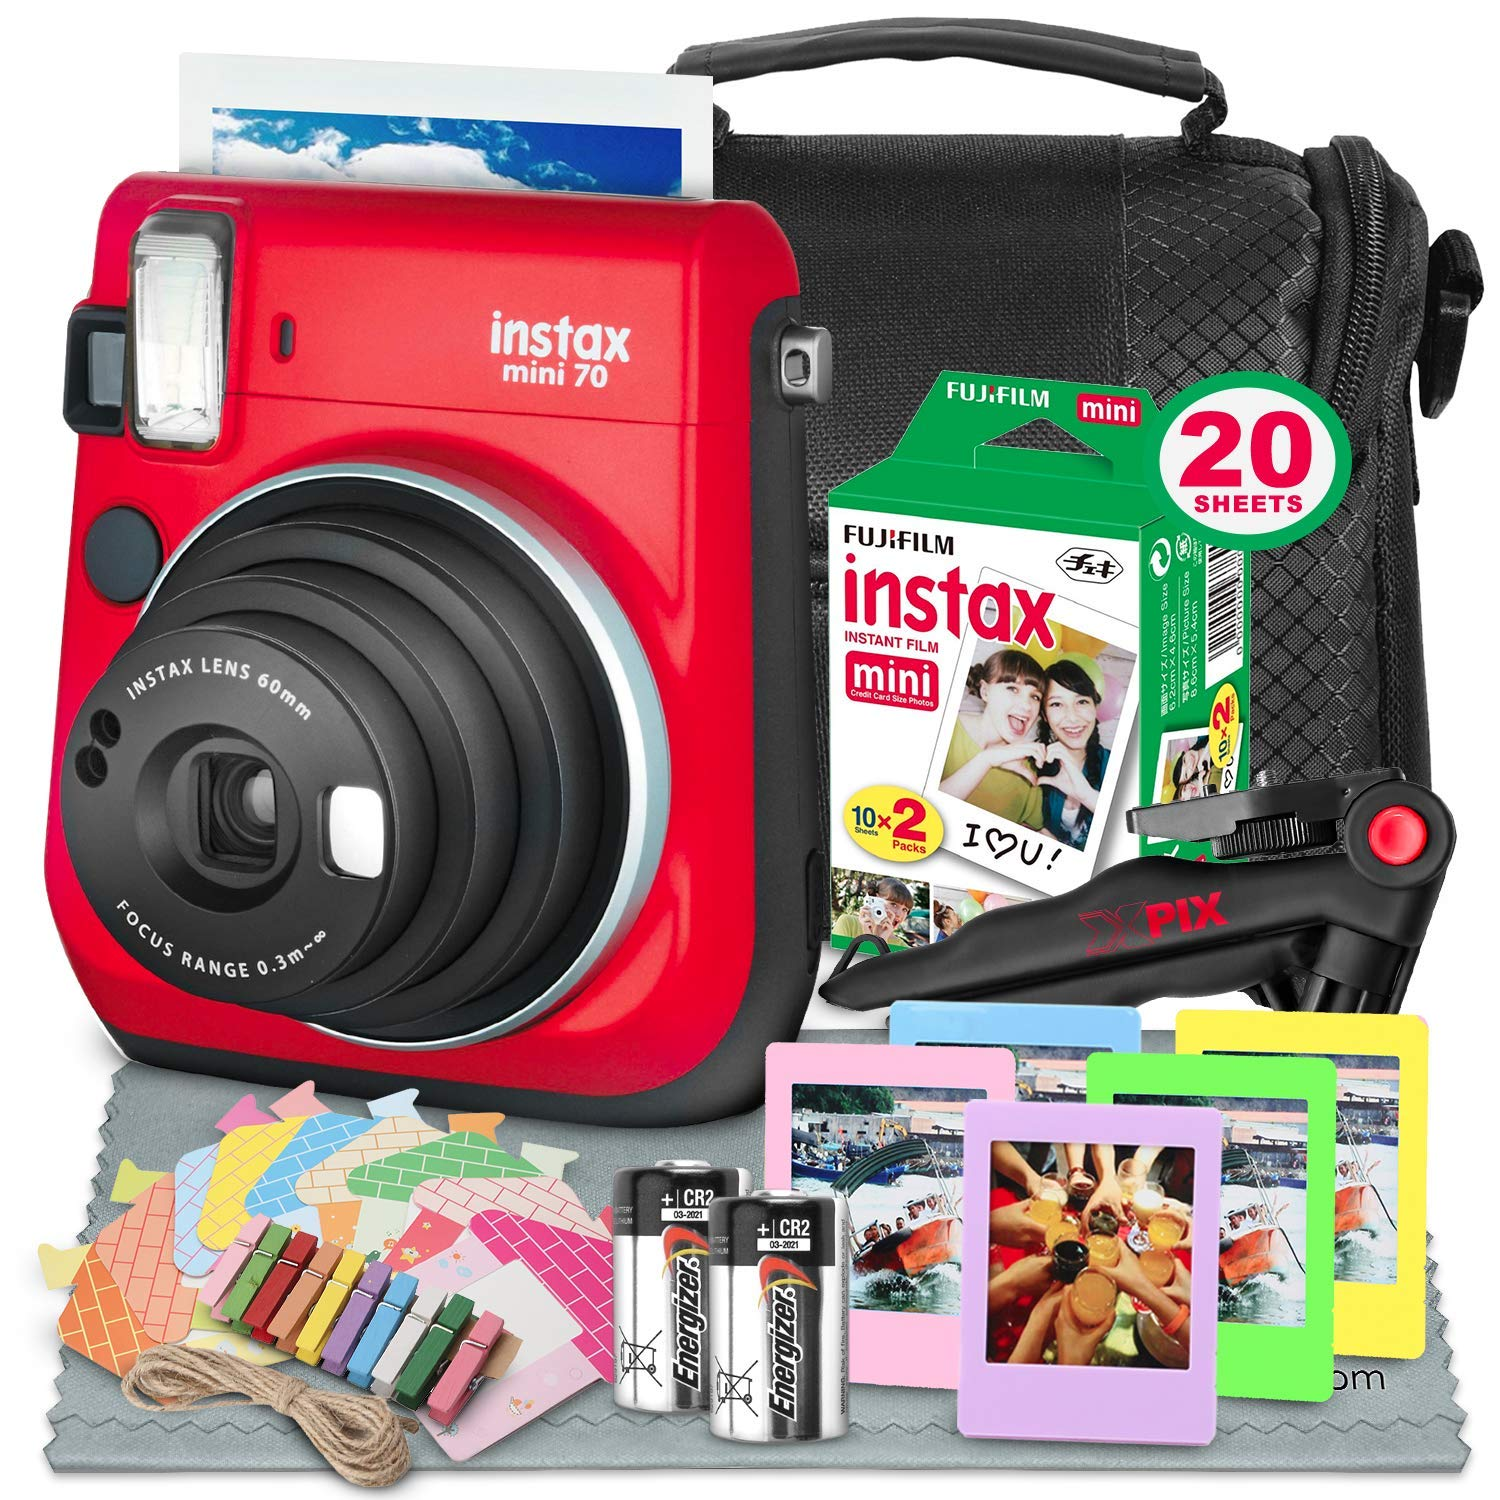 Fujifilm Instax Mini 70 Instant Film Camera (Red) W/Deluxe Accessory Bundle Instax Twin Pack Instant Film, Frames + Xpix Table Top Tripod, CR-2 Battery + Fibertique Cleaning Cloth by Fujifilm